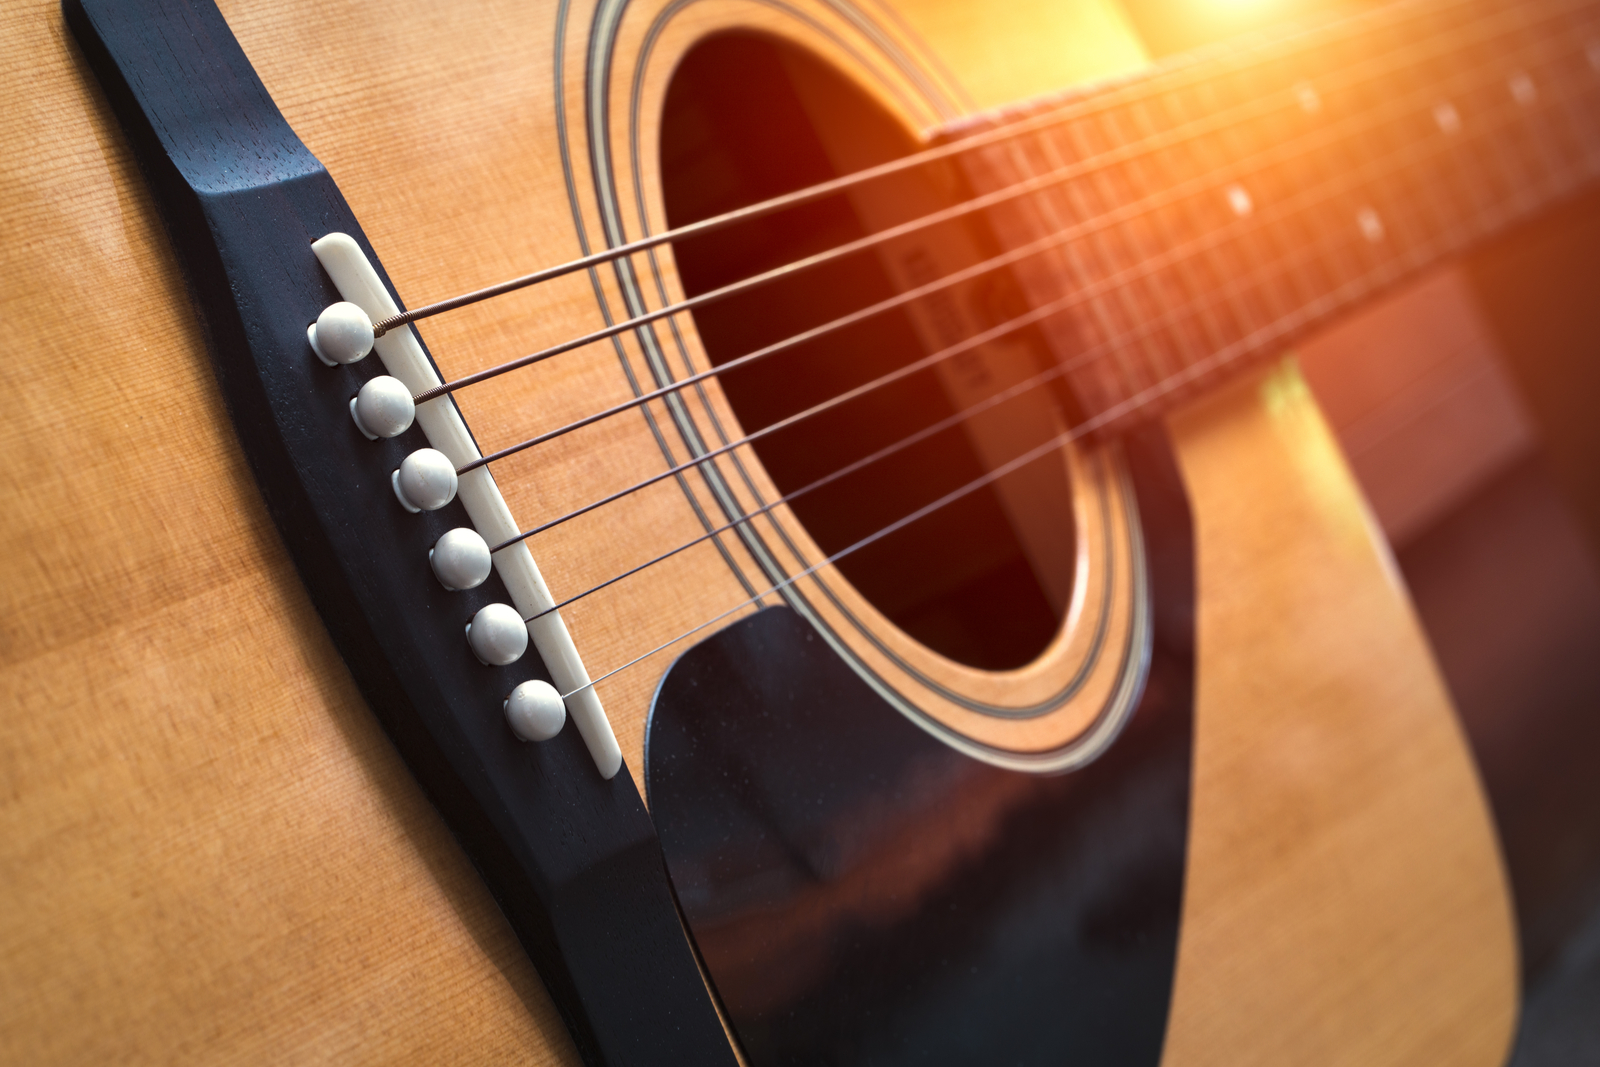 Beginning Guitar Lesson   How To Play Guitar For Beginners: A Step-by-Step Guide